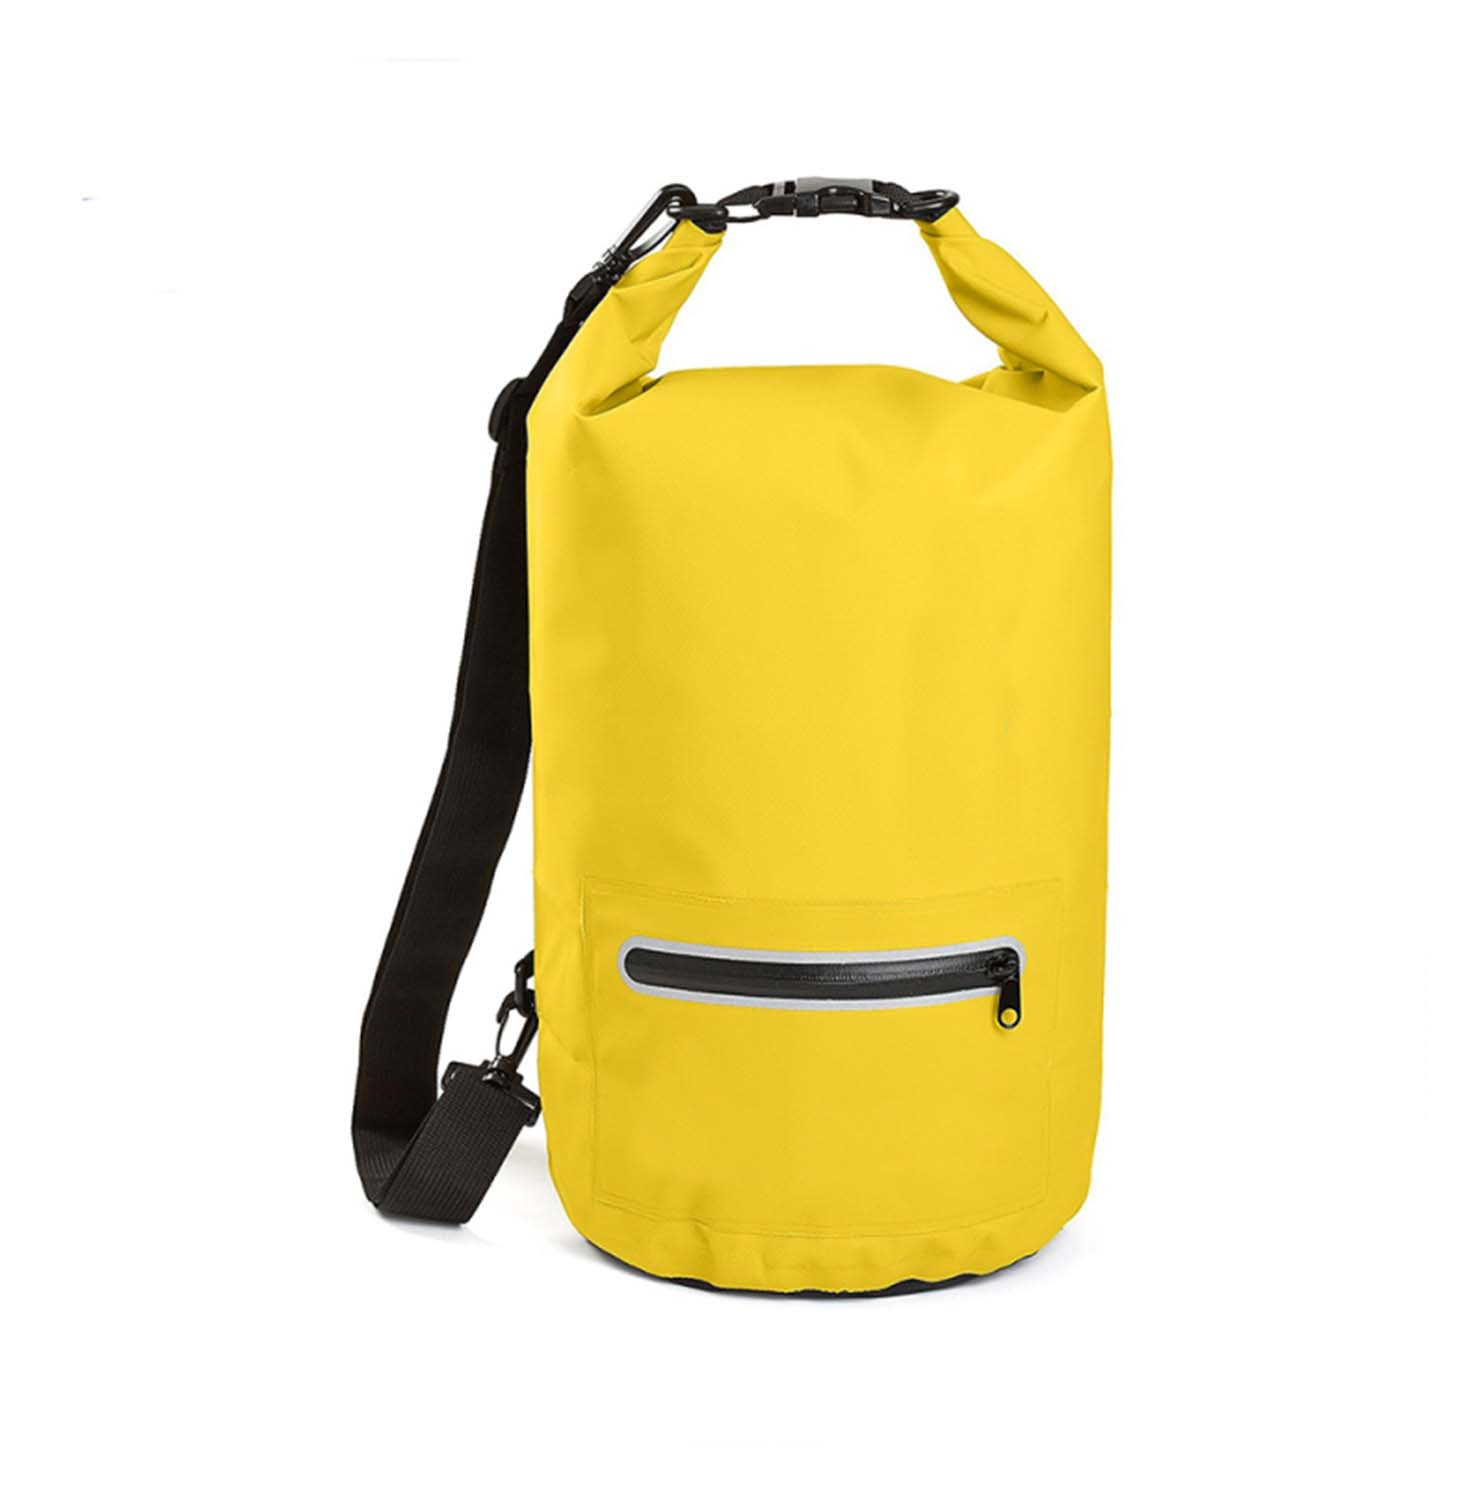 Prosperity sport dry pack bag manufacturer for kayaking